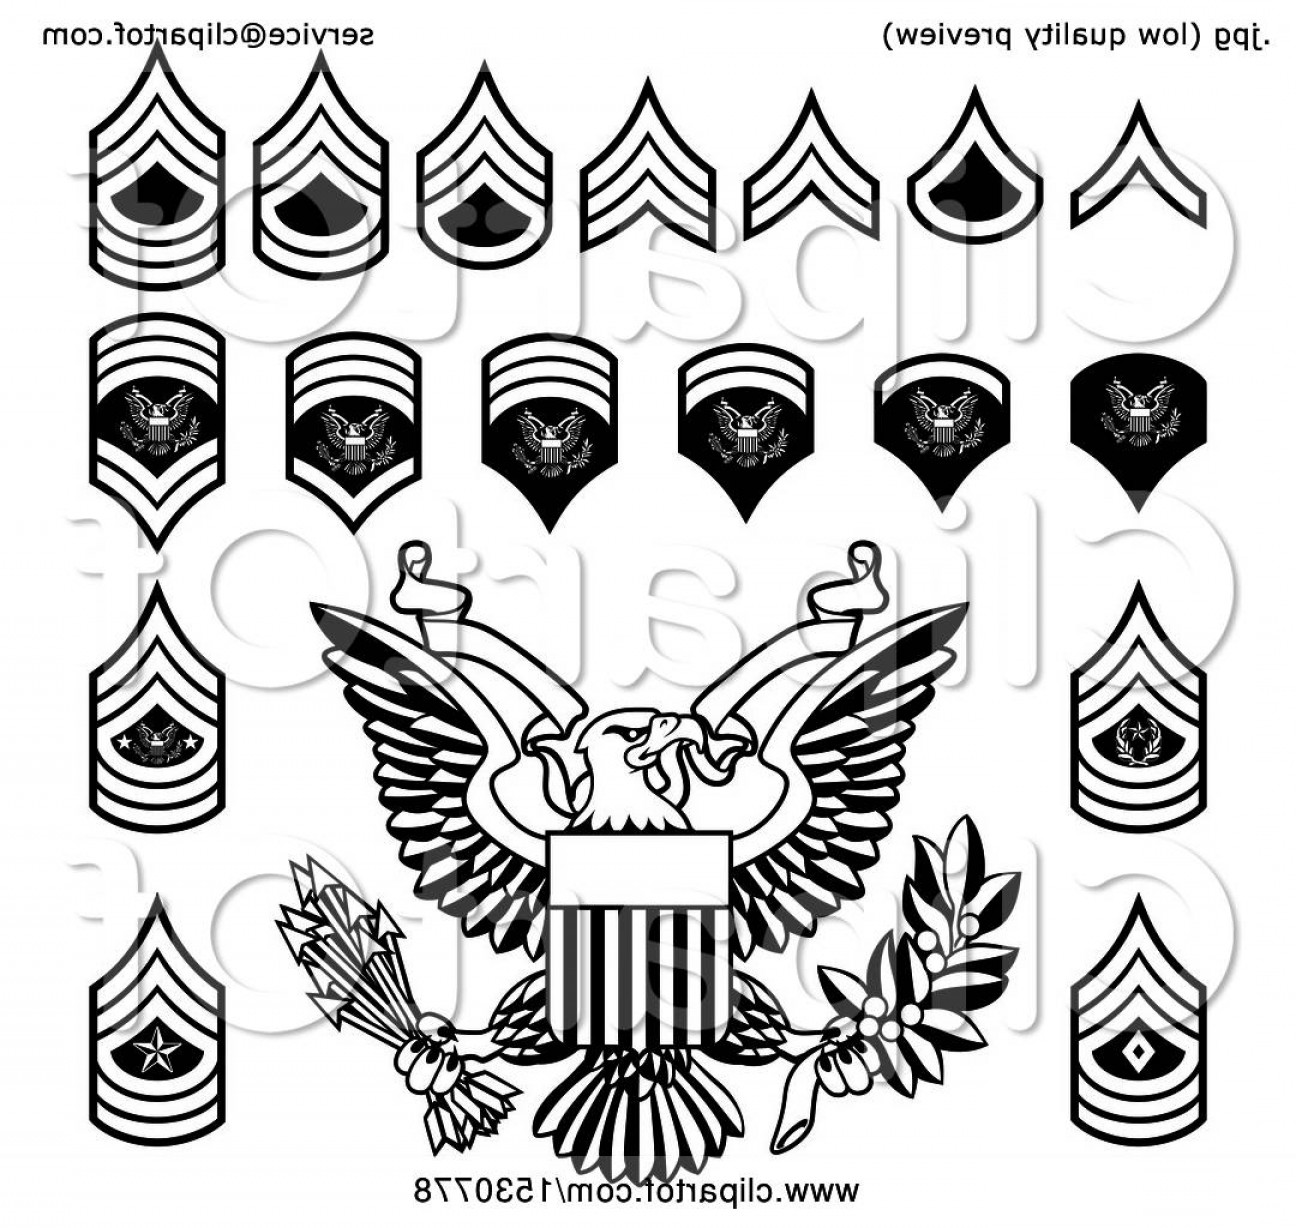 Army rank patches clipart clip art free Black And White American Military Army Officer Rank Insignia Badges ... clip art free